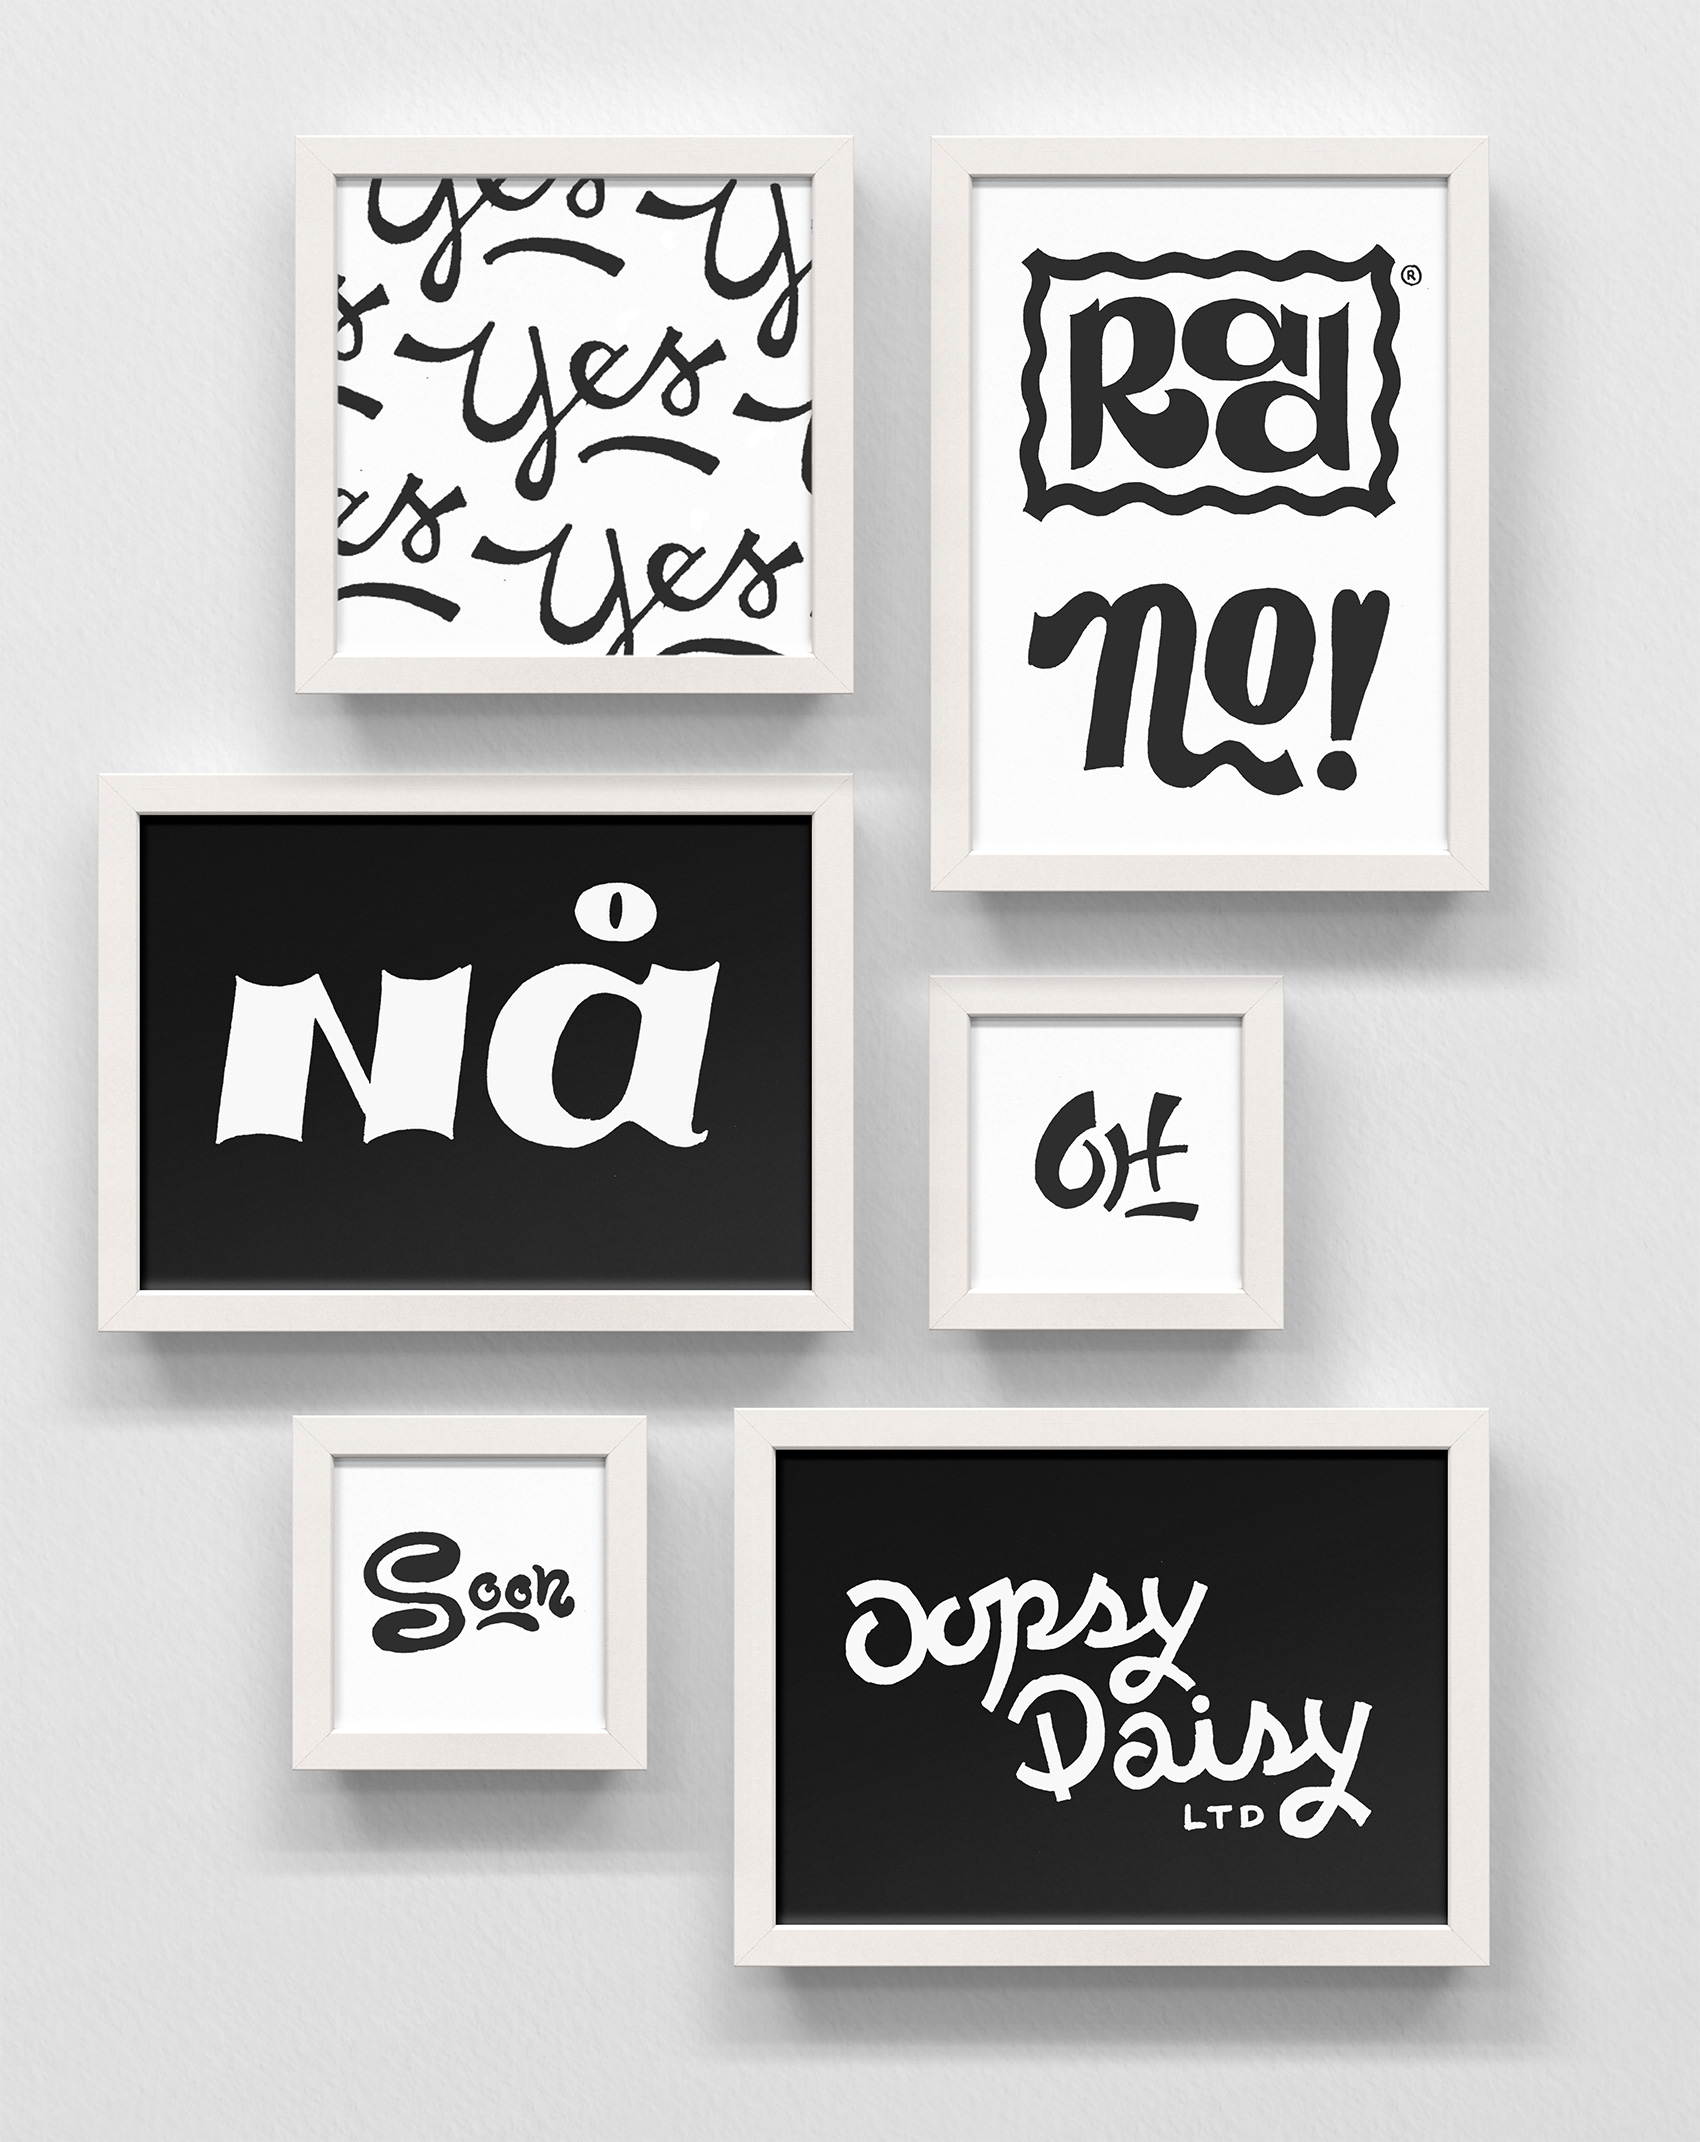 A series of inked hand lettered words in black and white: Rad, No!, nå, soon, oopsy daisy LTD, OH, yes yes yes yes yes yes.